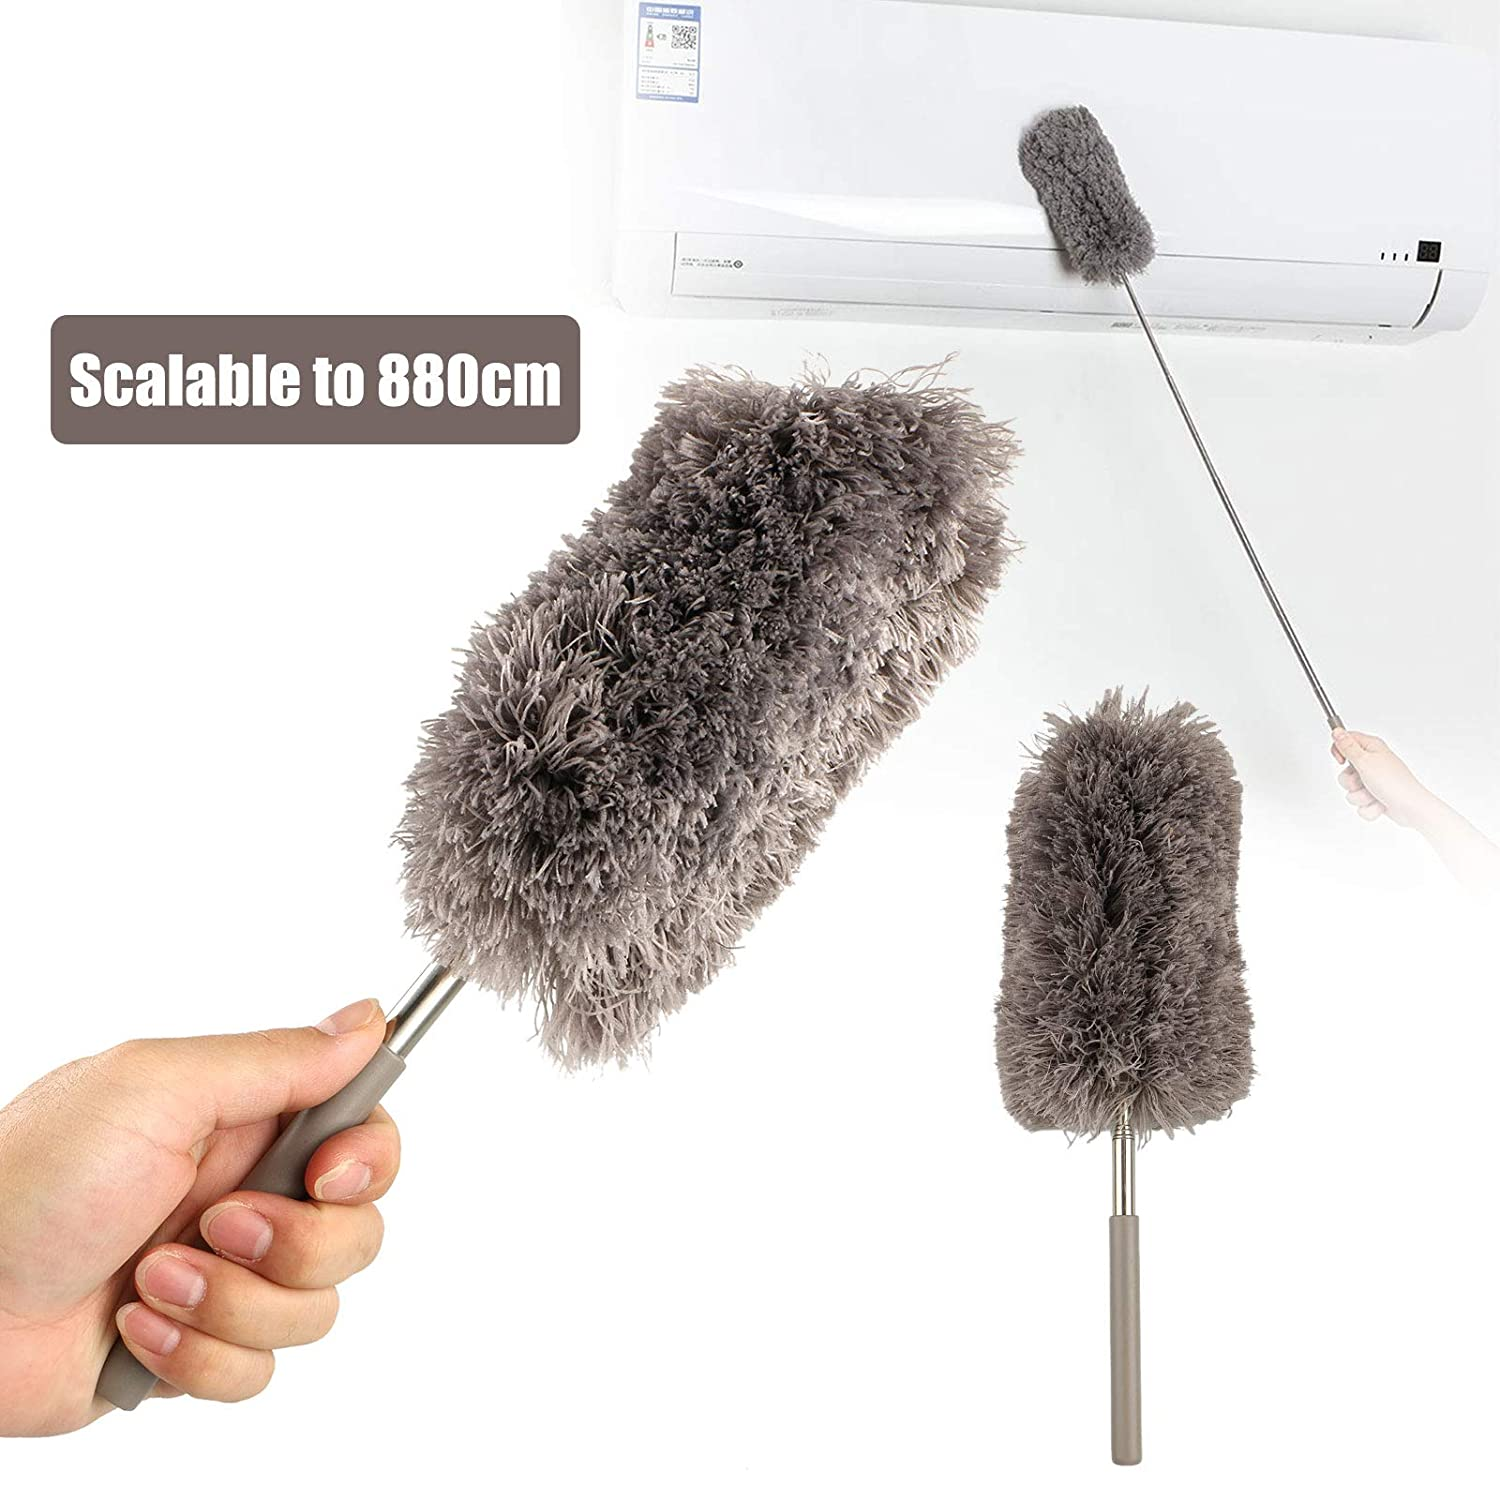 """EEEKit Long Duster, Extension Ceiling Fan Brush Cobweb Remover Microfiber Head, 12""""-34"""" Extension Pole, High Ceiling Chandelier Cleaner"""